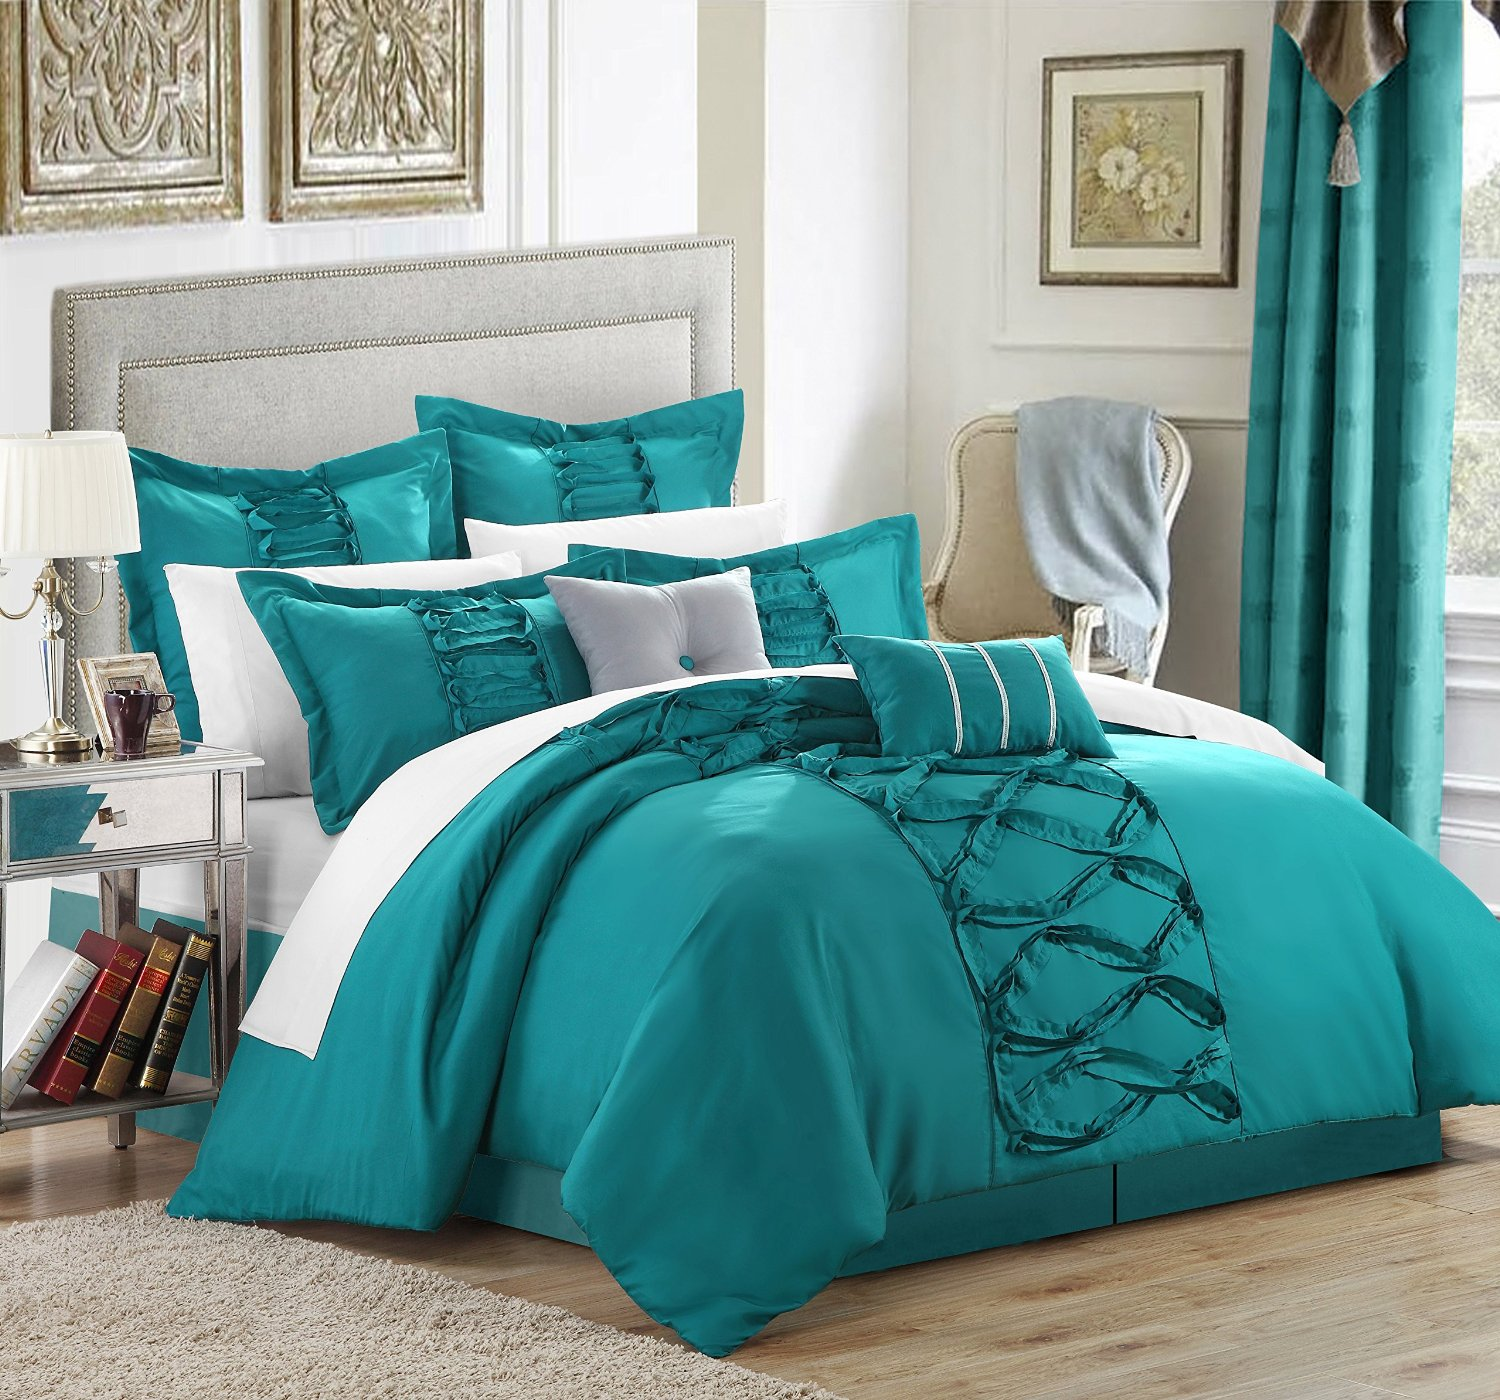 Picture of: Teal Bedding Sets Queen and Curtain